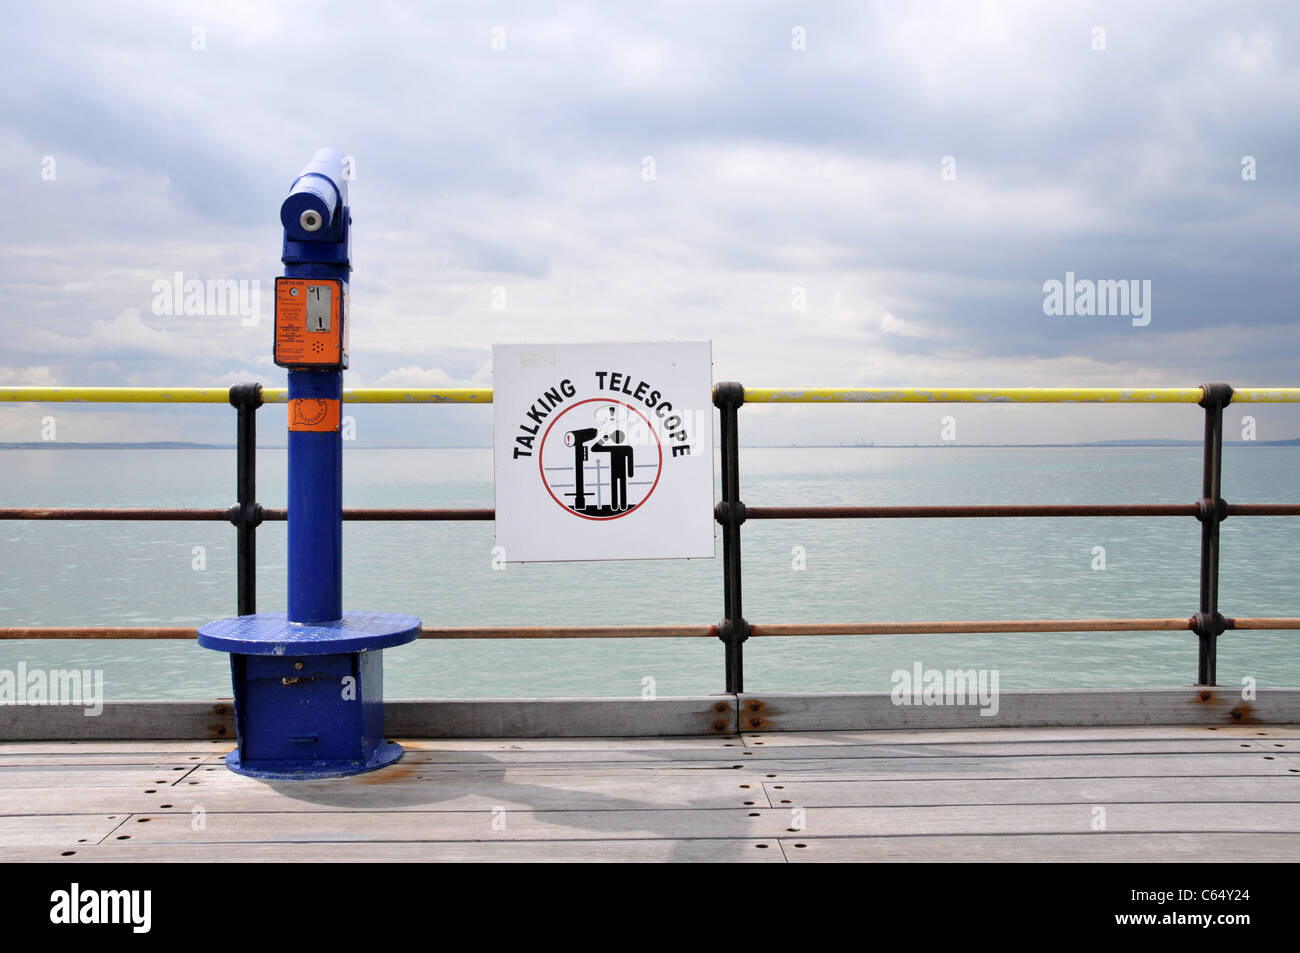 Southend Pier sea sky cloudy seaside English holiday resort day trip London - Stock Image